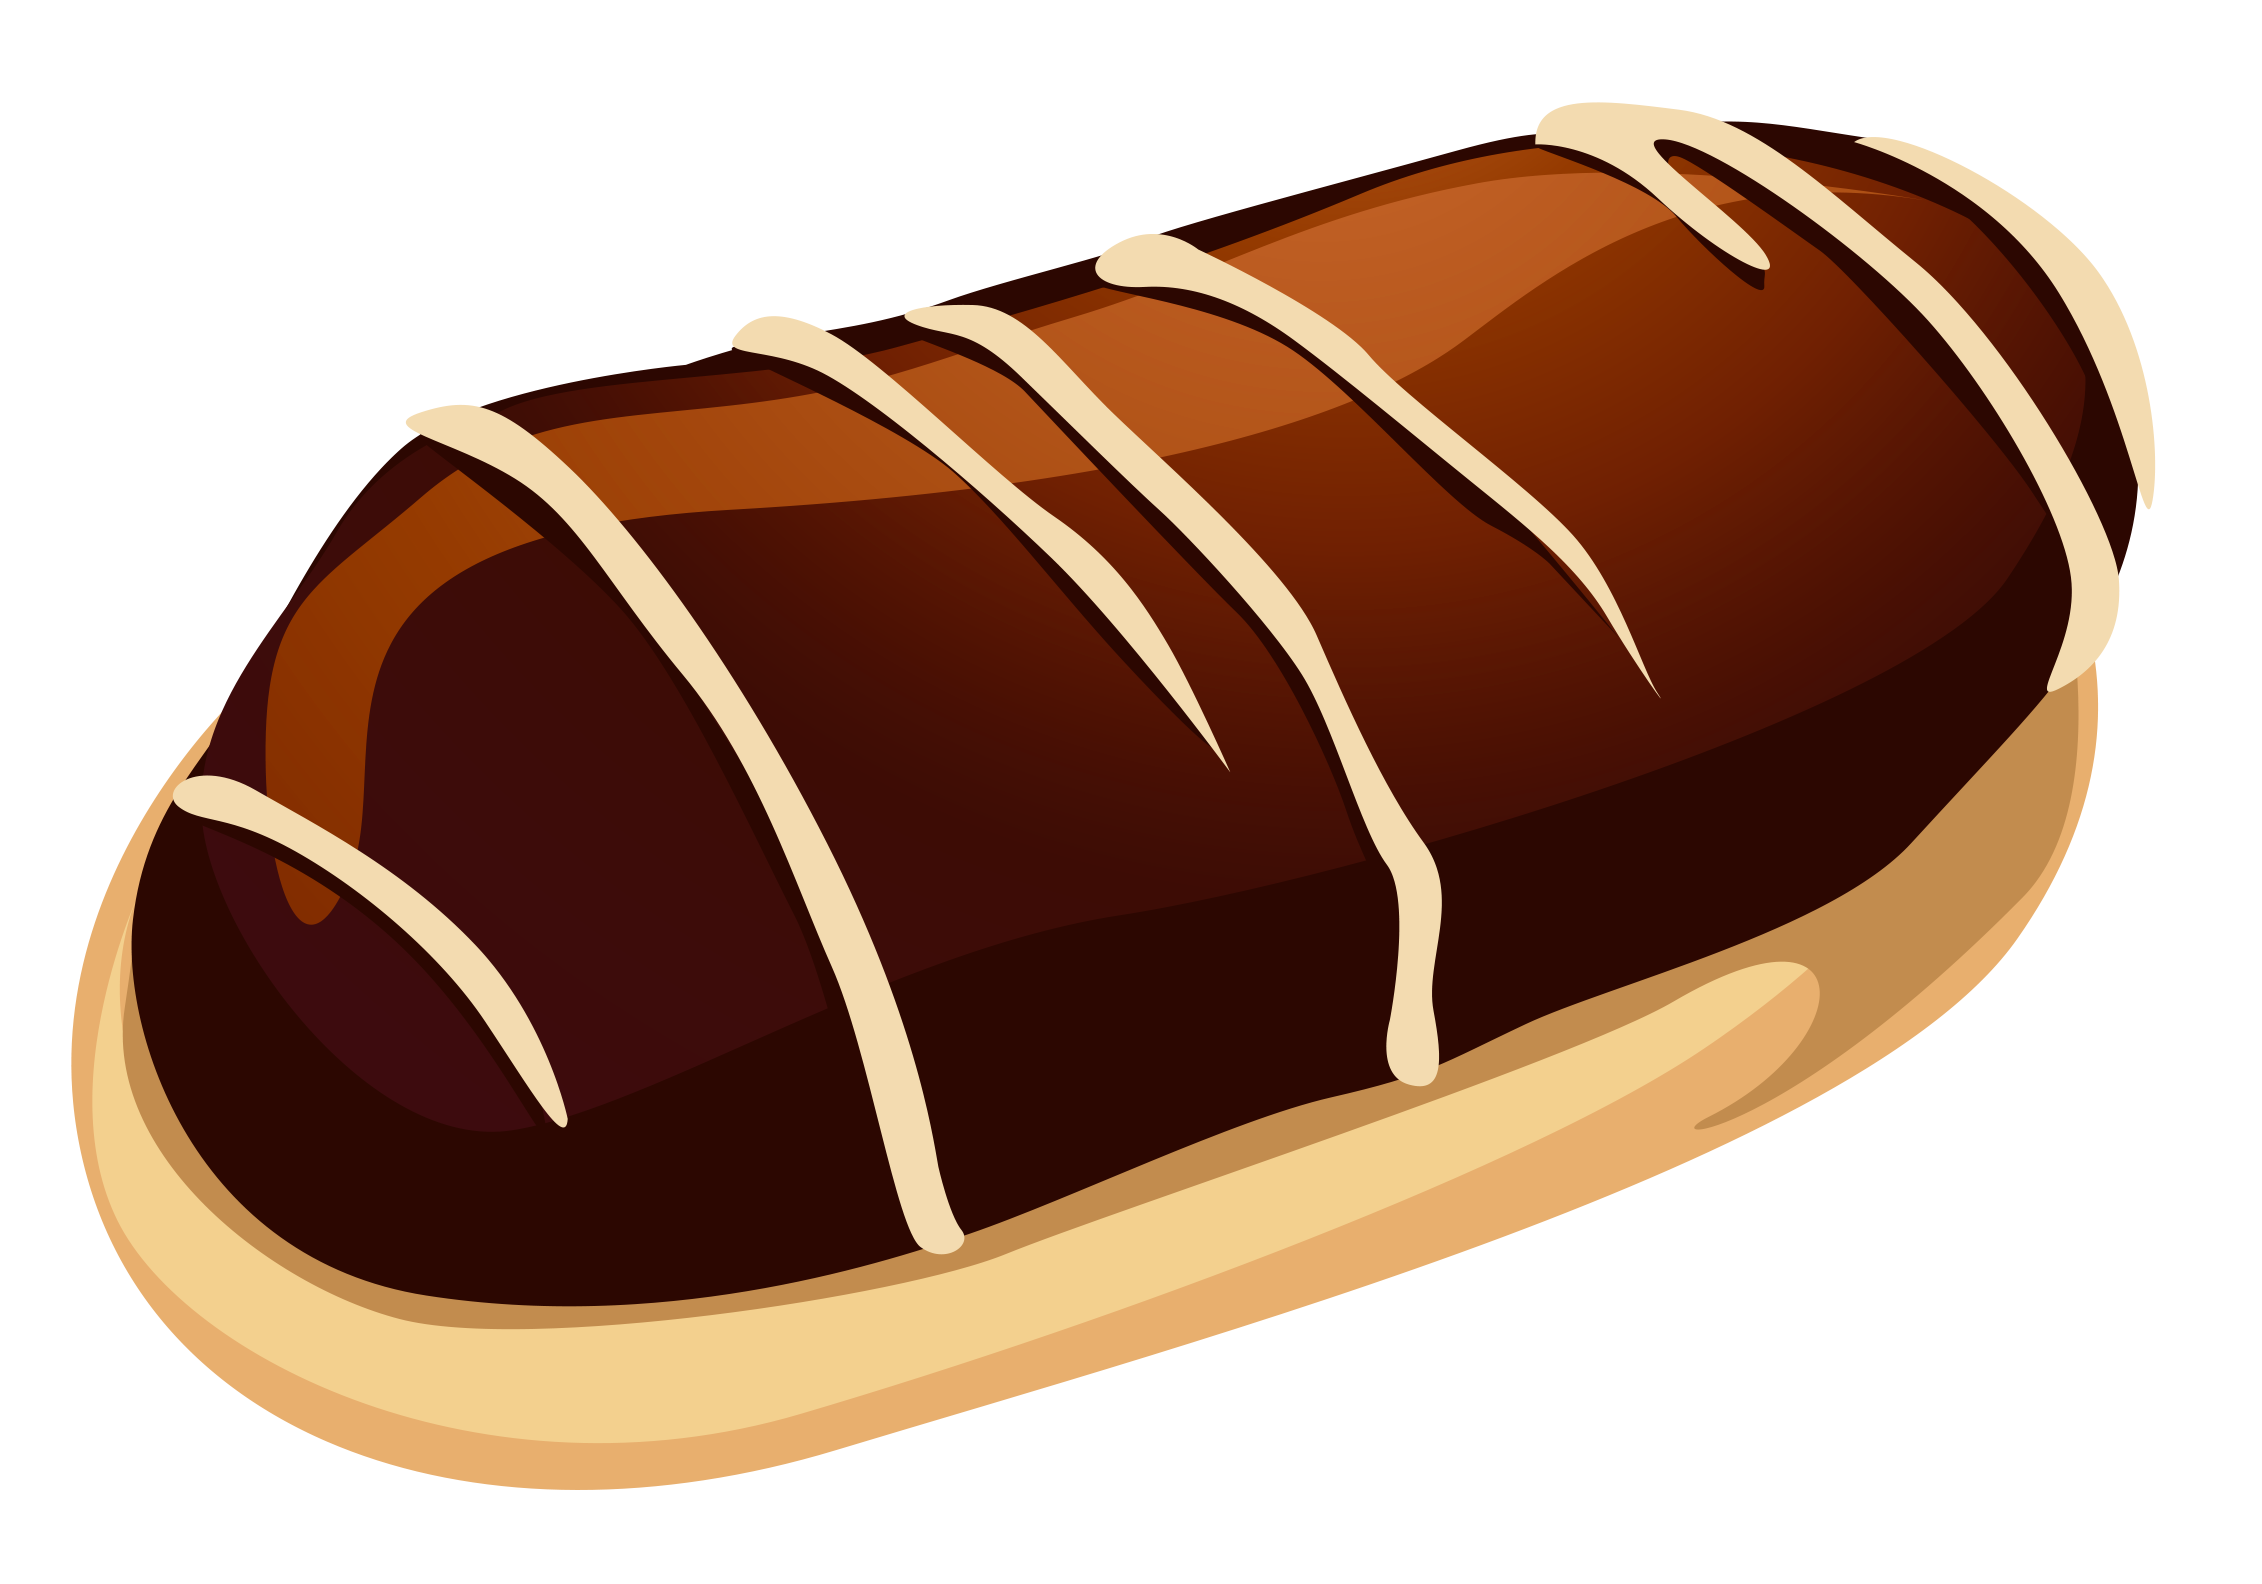 Sweet with chocolate png. Water clipart bread